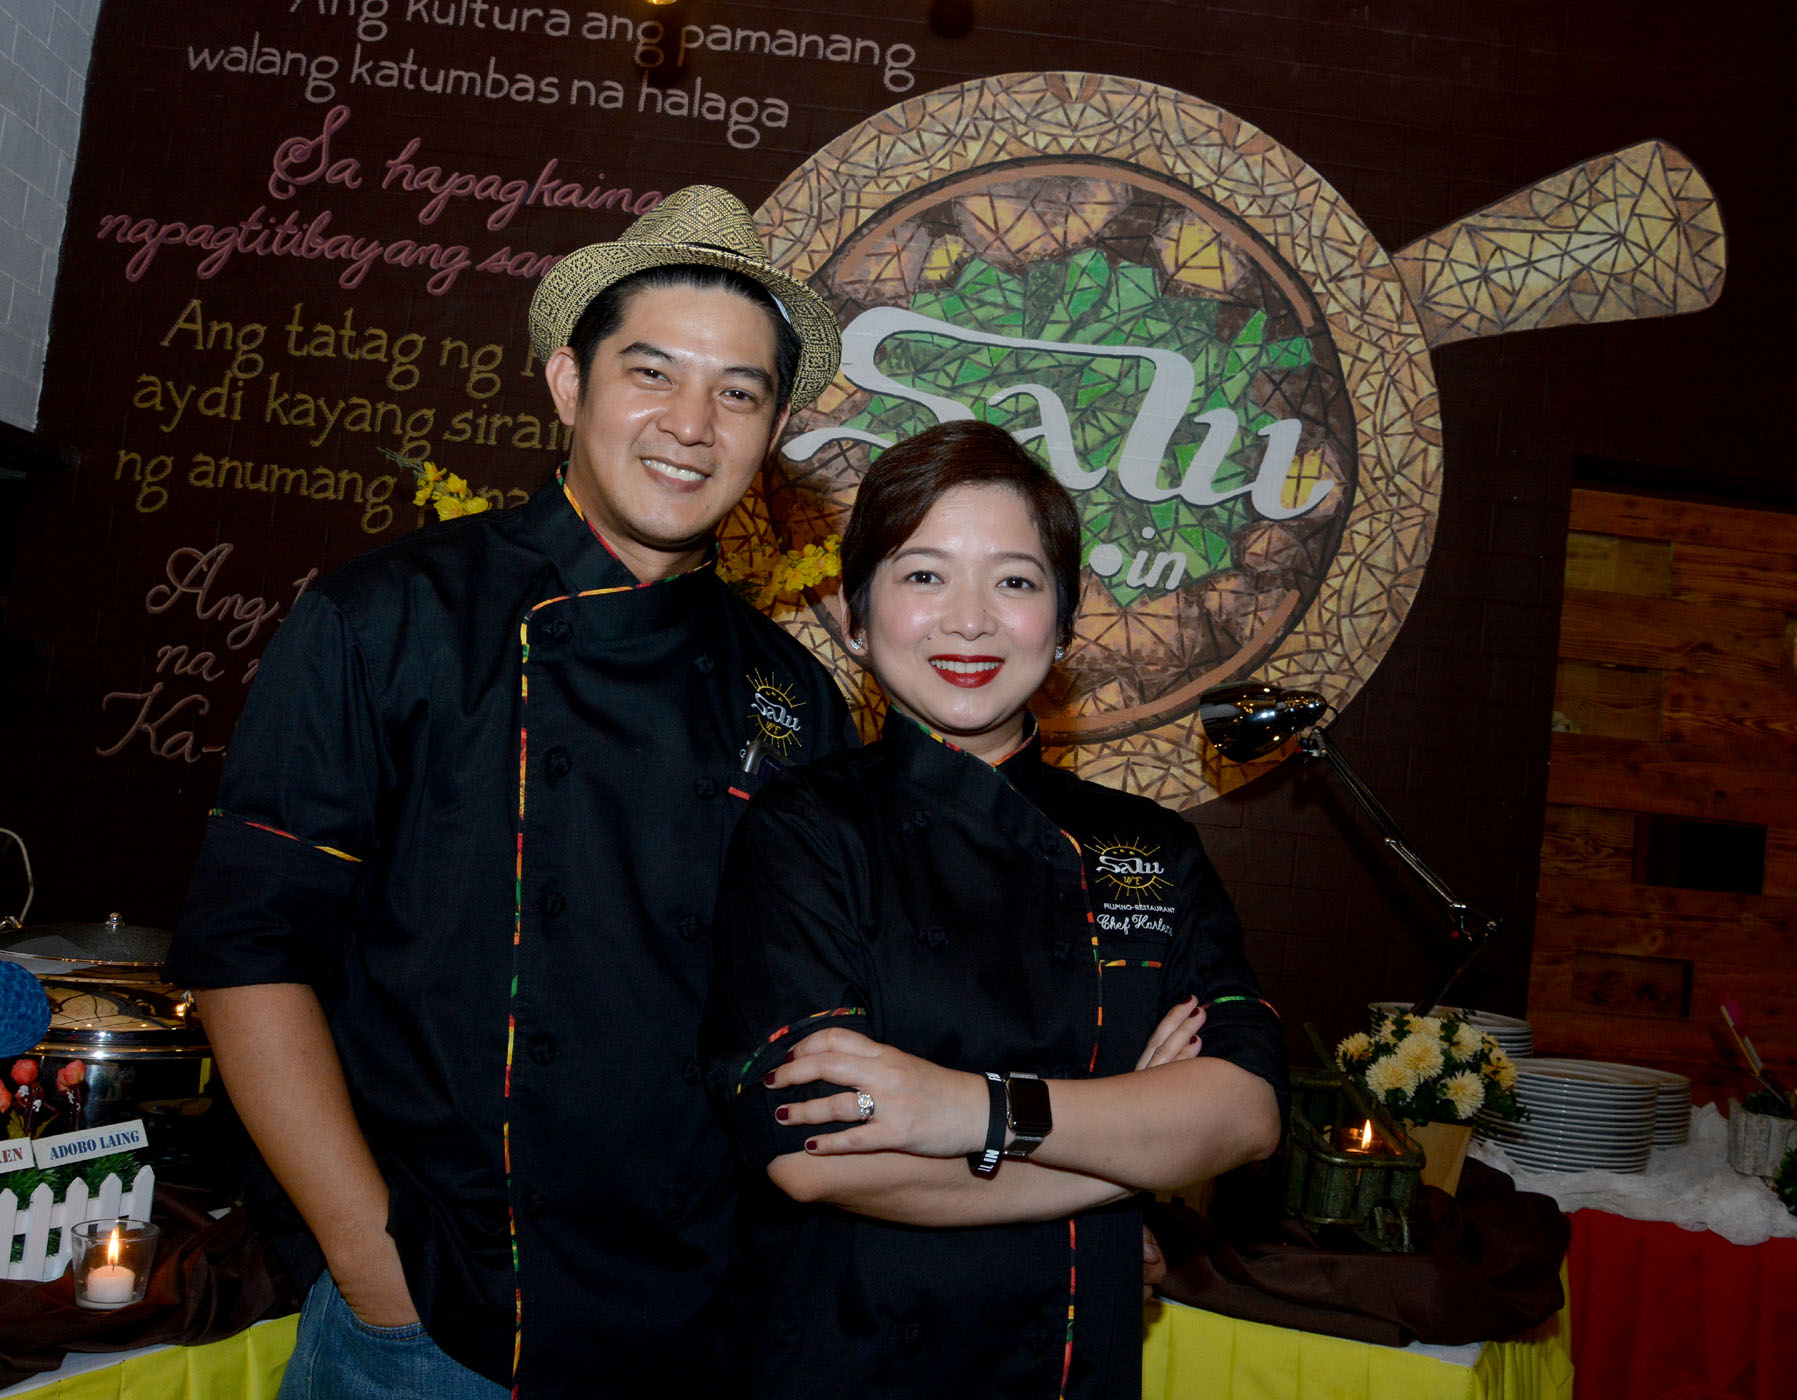 A GASTRONOMIC JOURNEY FOR REAL PINOY CRAVINGS